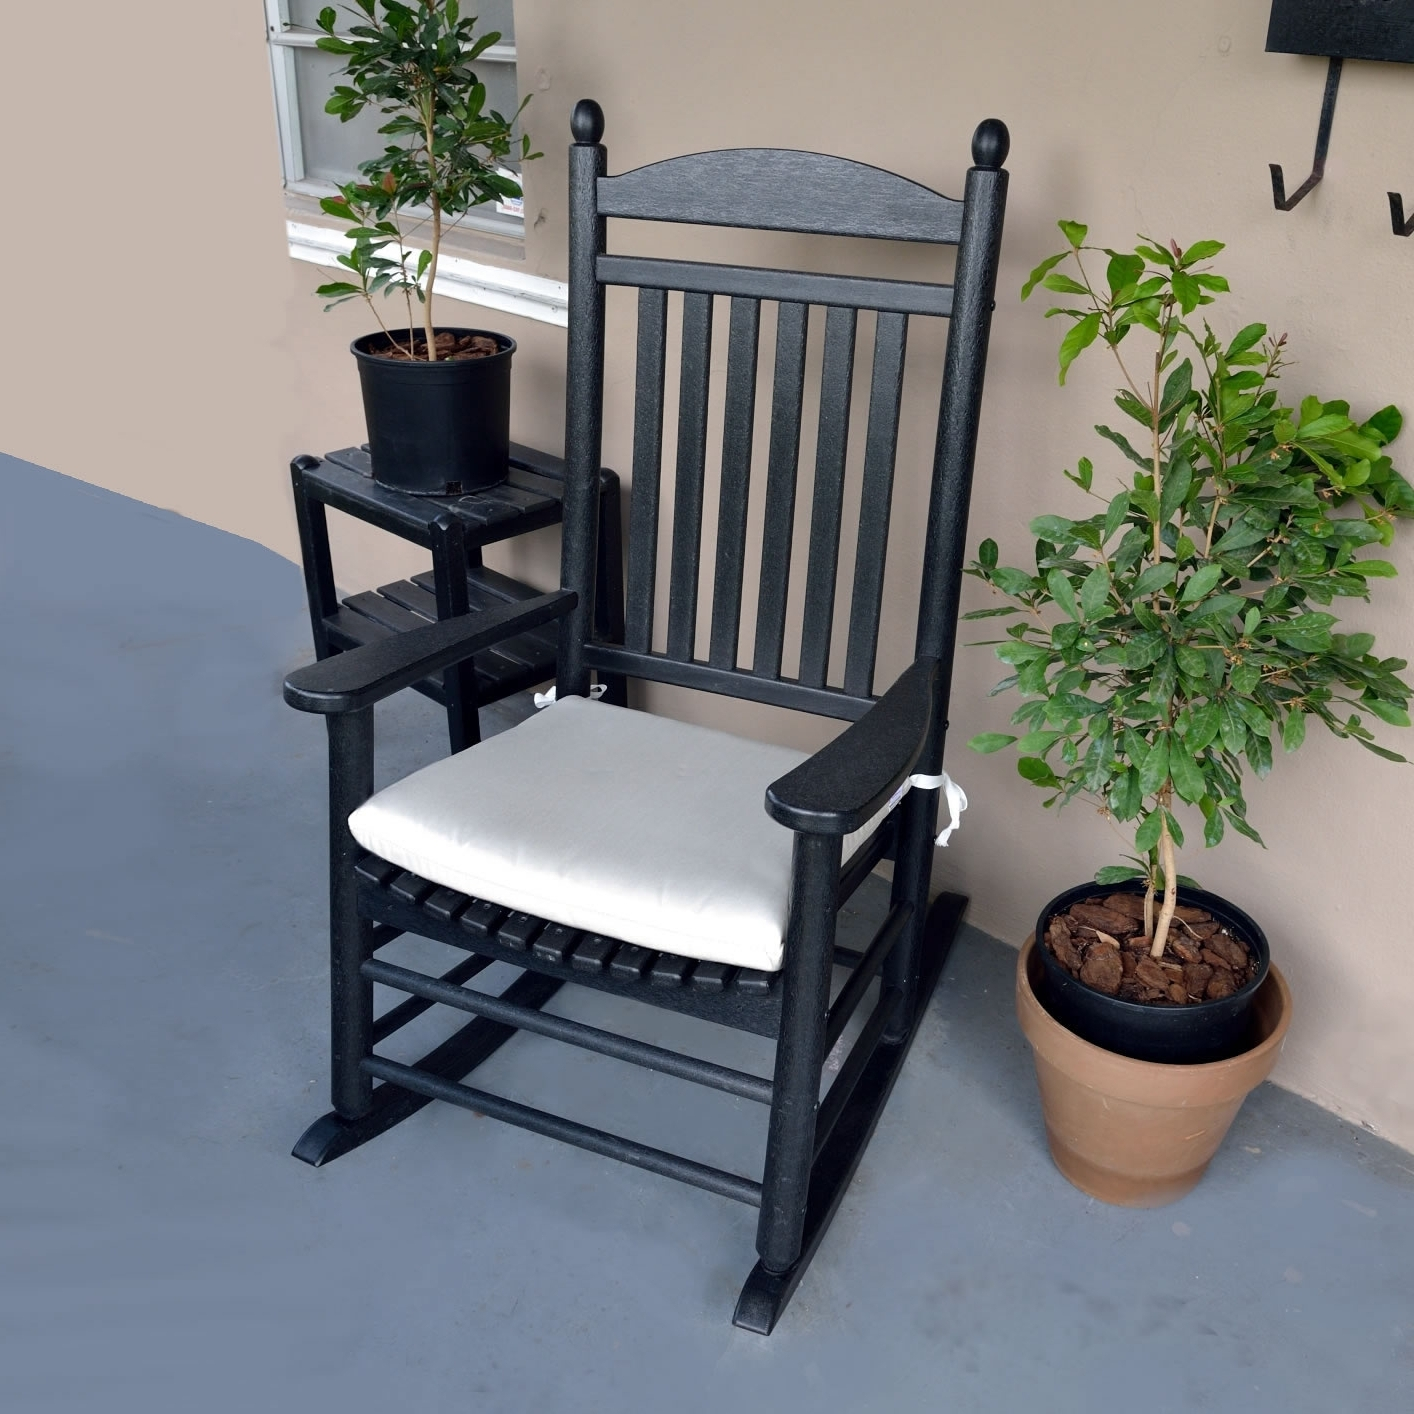 Polywood Rocking Chair Seat Cushions – Outdoor Cushions – Accessories Pertaining To Popular Rocking Chair Cushions For Outdoor (View 9 of 15)